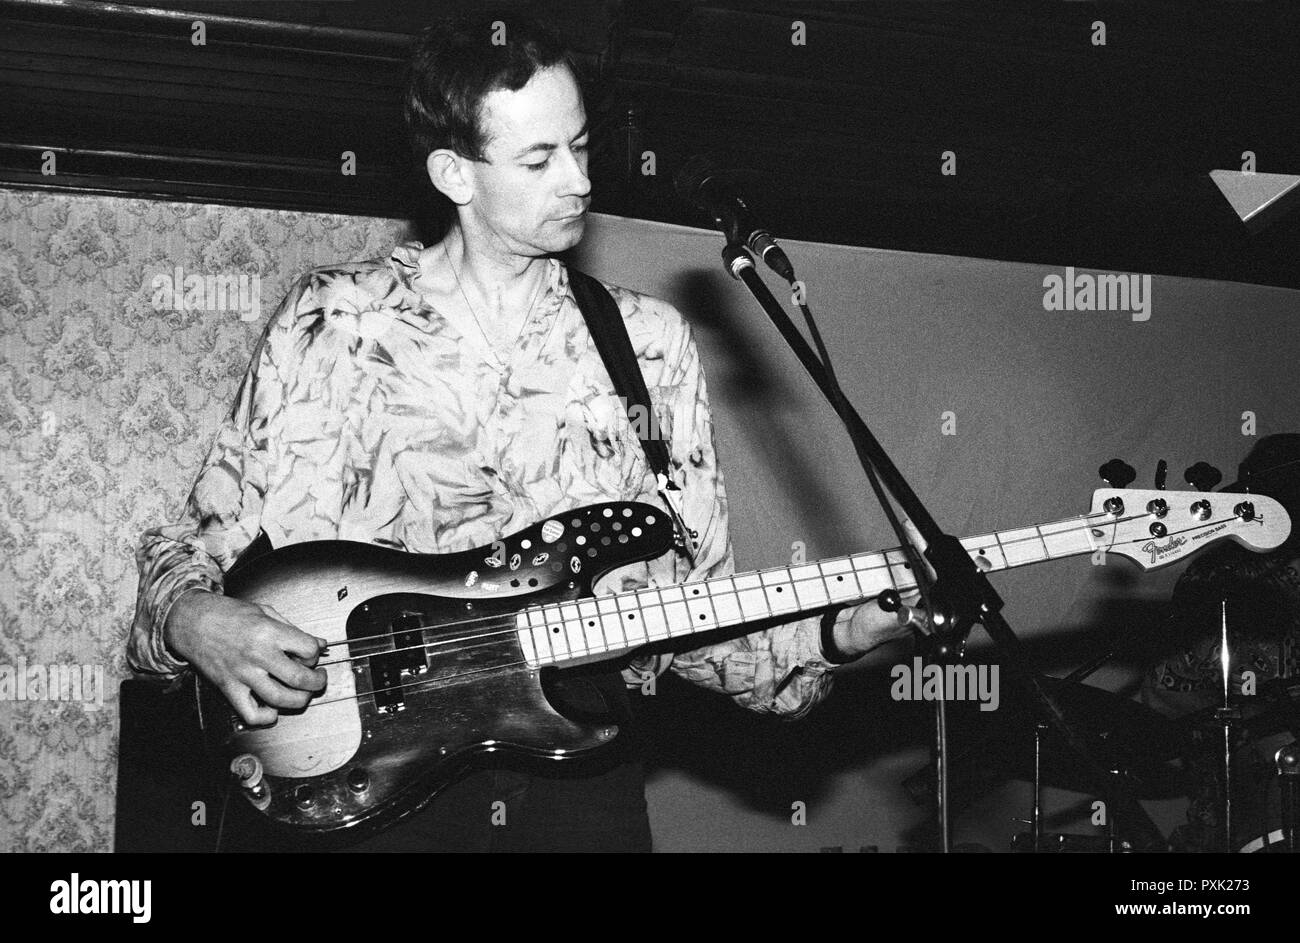 Jowe Head, bass guitarist of post-punk band Television Personalities performing at Esquires, Bedford, UK, in 1990. - Stock Image